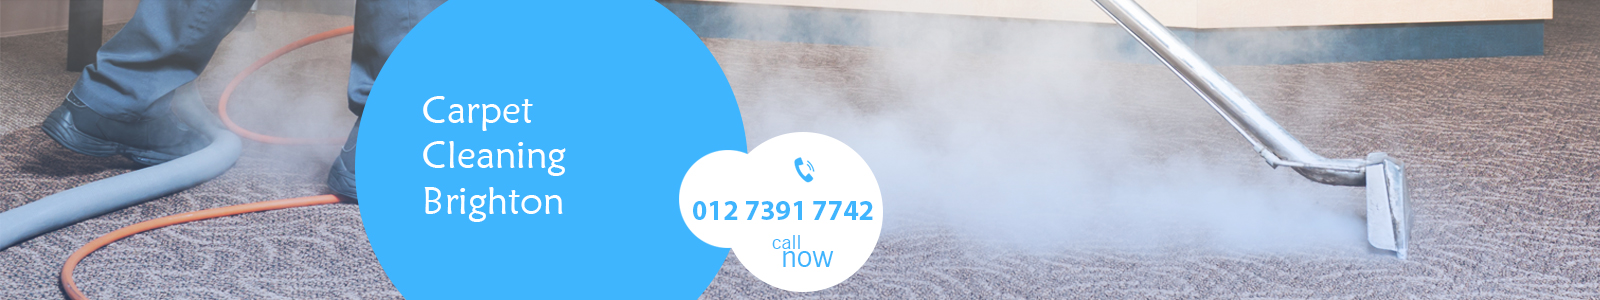 carpet-cleaning-brighton